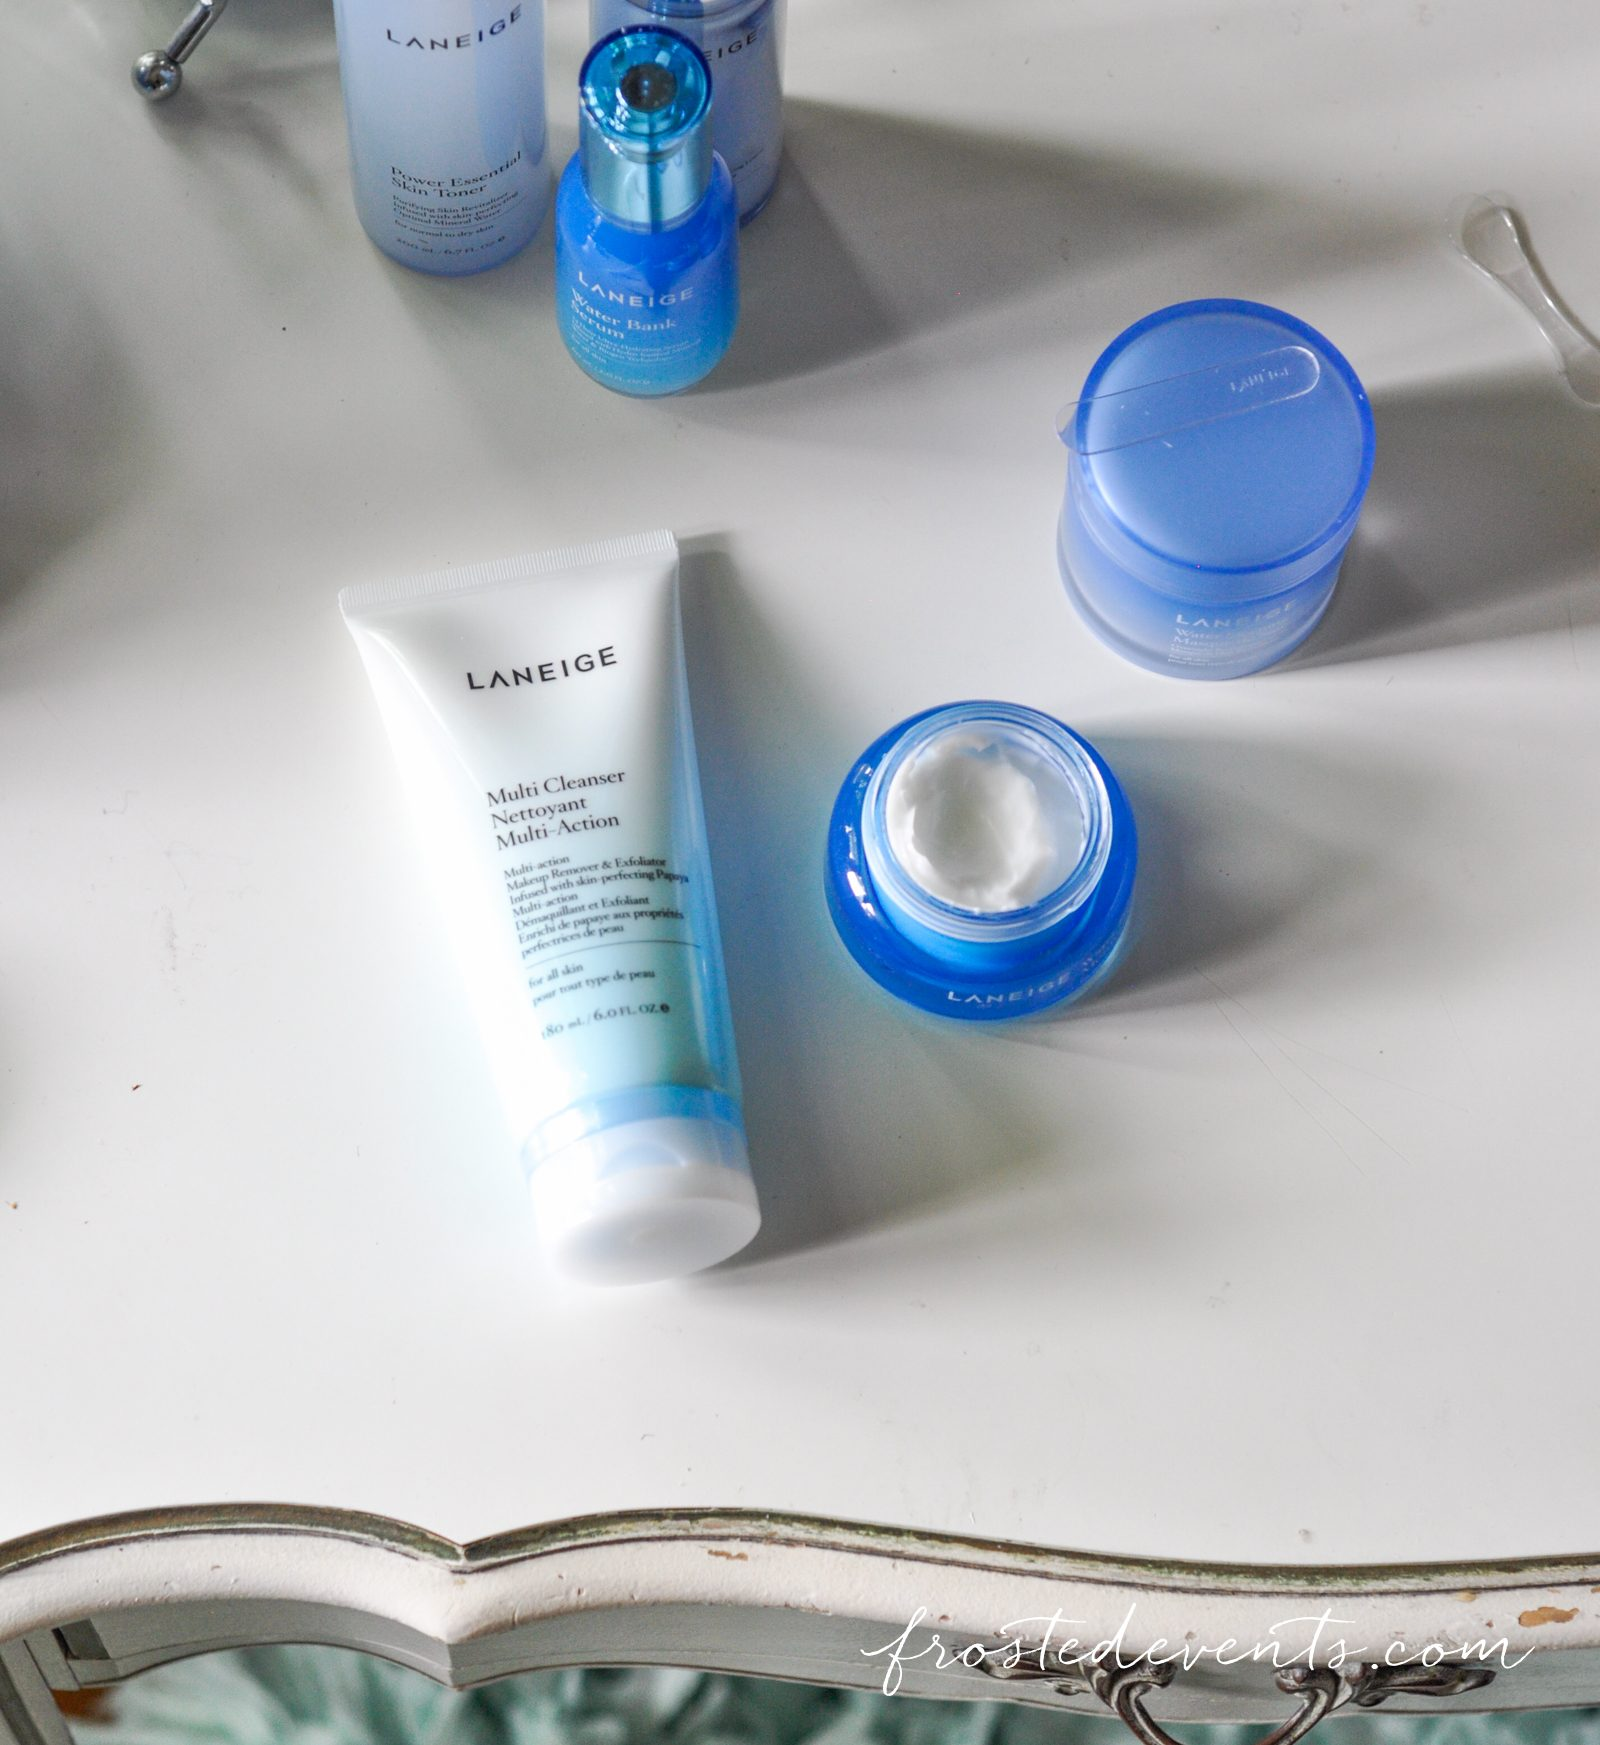 Glowing SKin LANEIGE Skincare Routine Review Target Best Anti-Aging Moisturizing K-Beauty Products